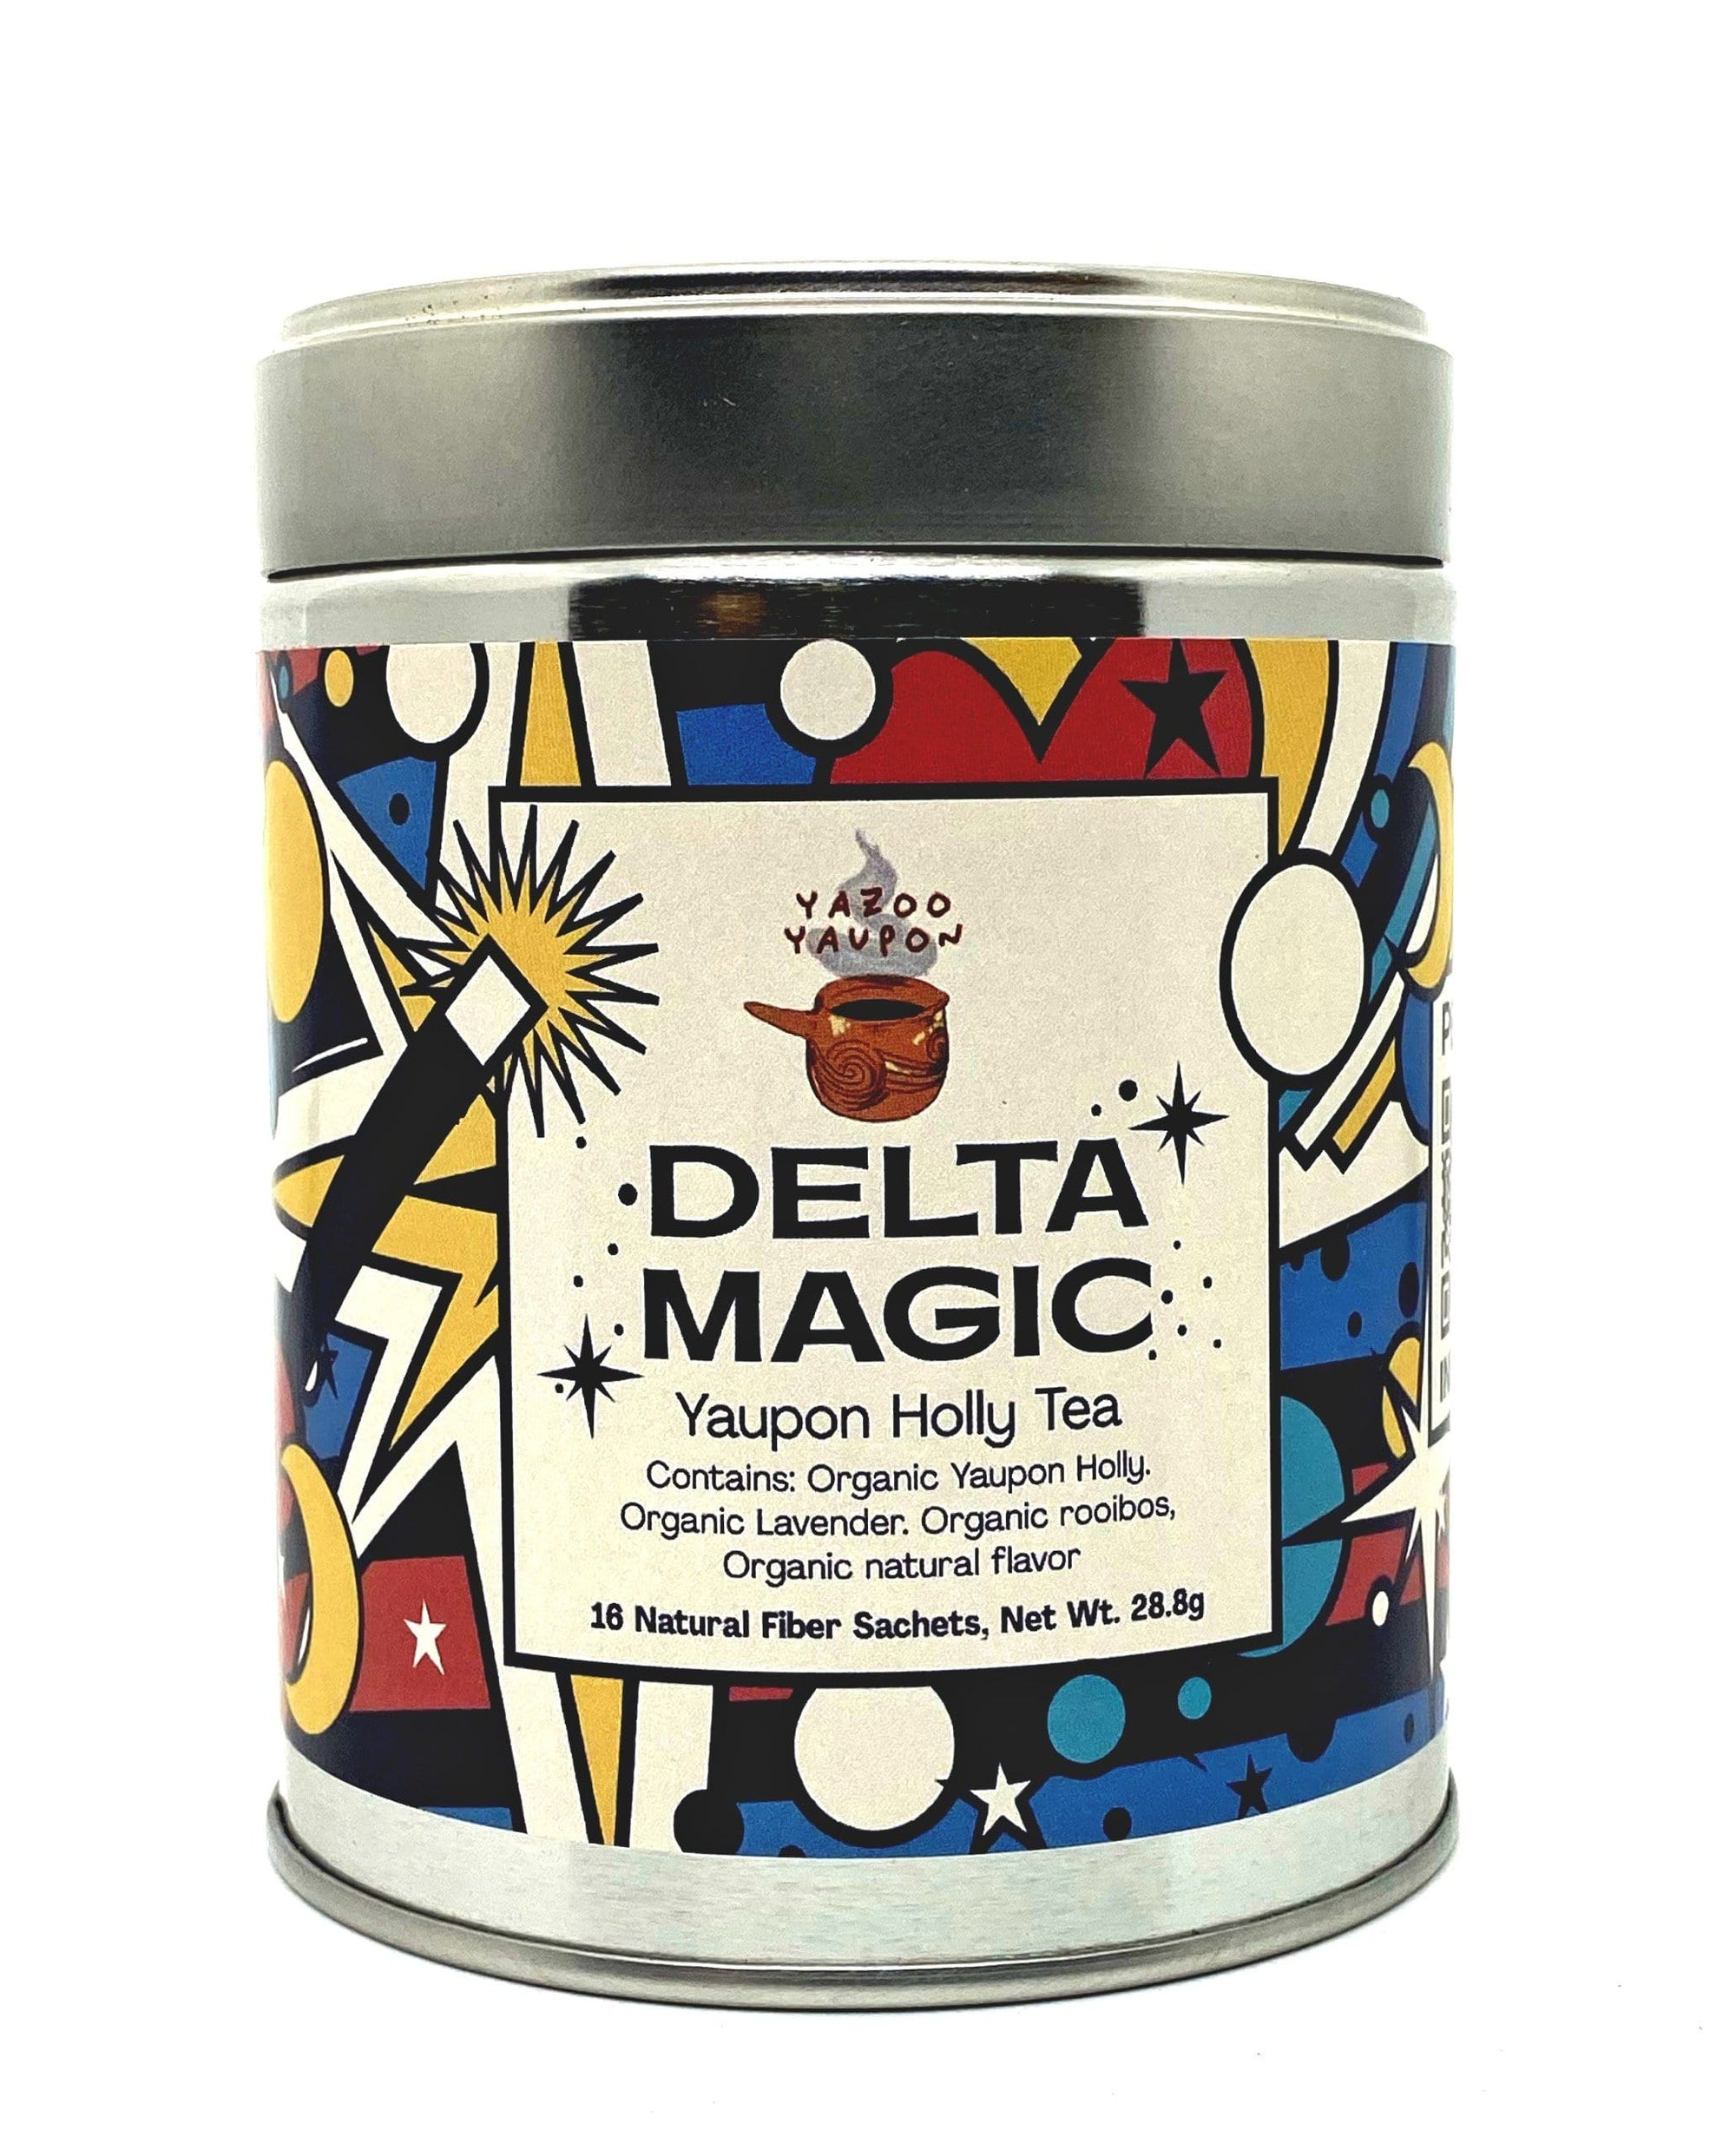 Yazoo Yaupon Delta Magic - 16 sachets